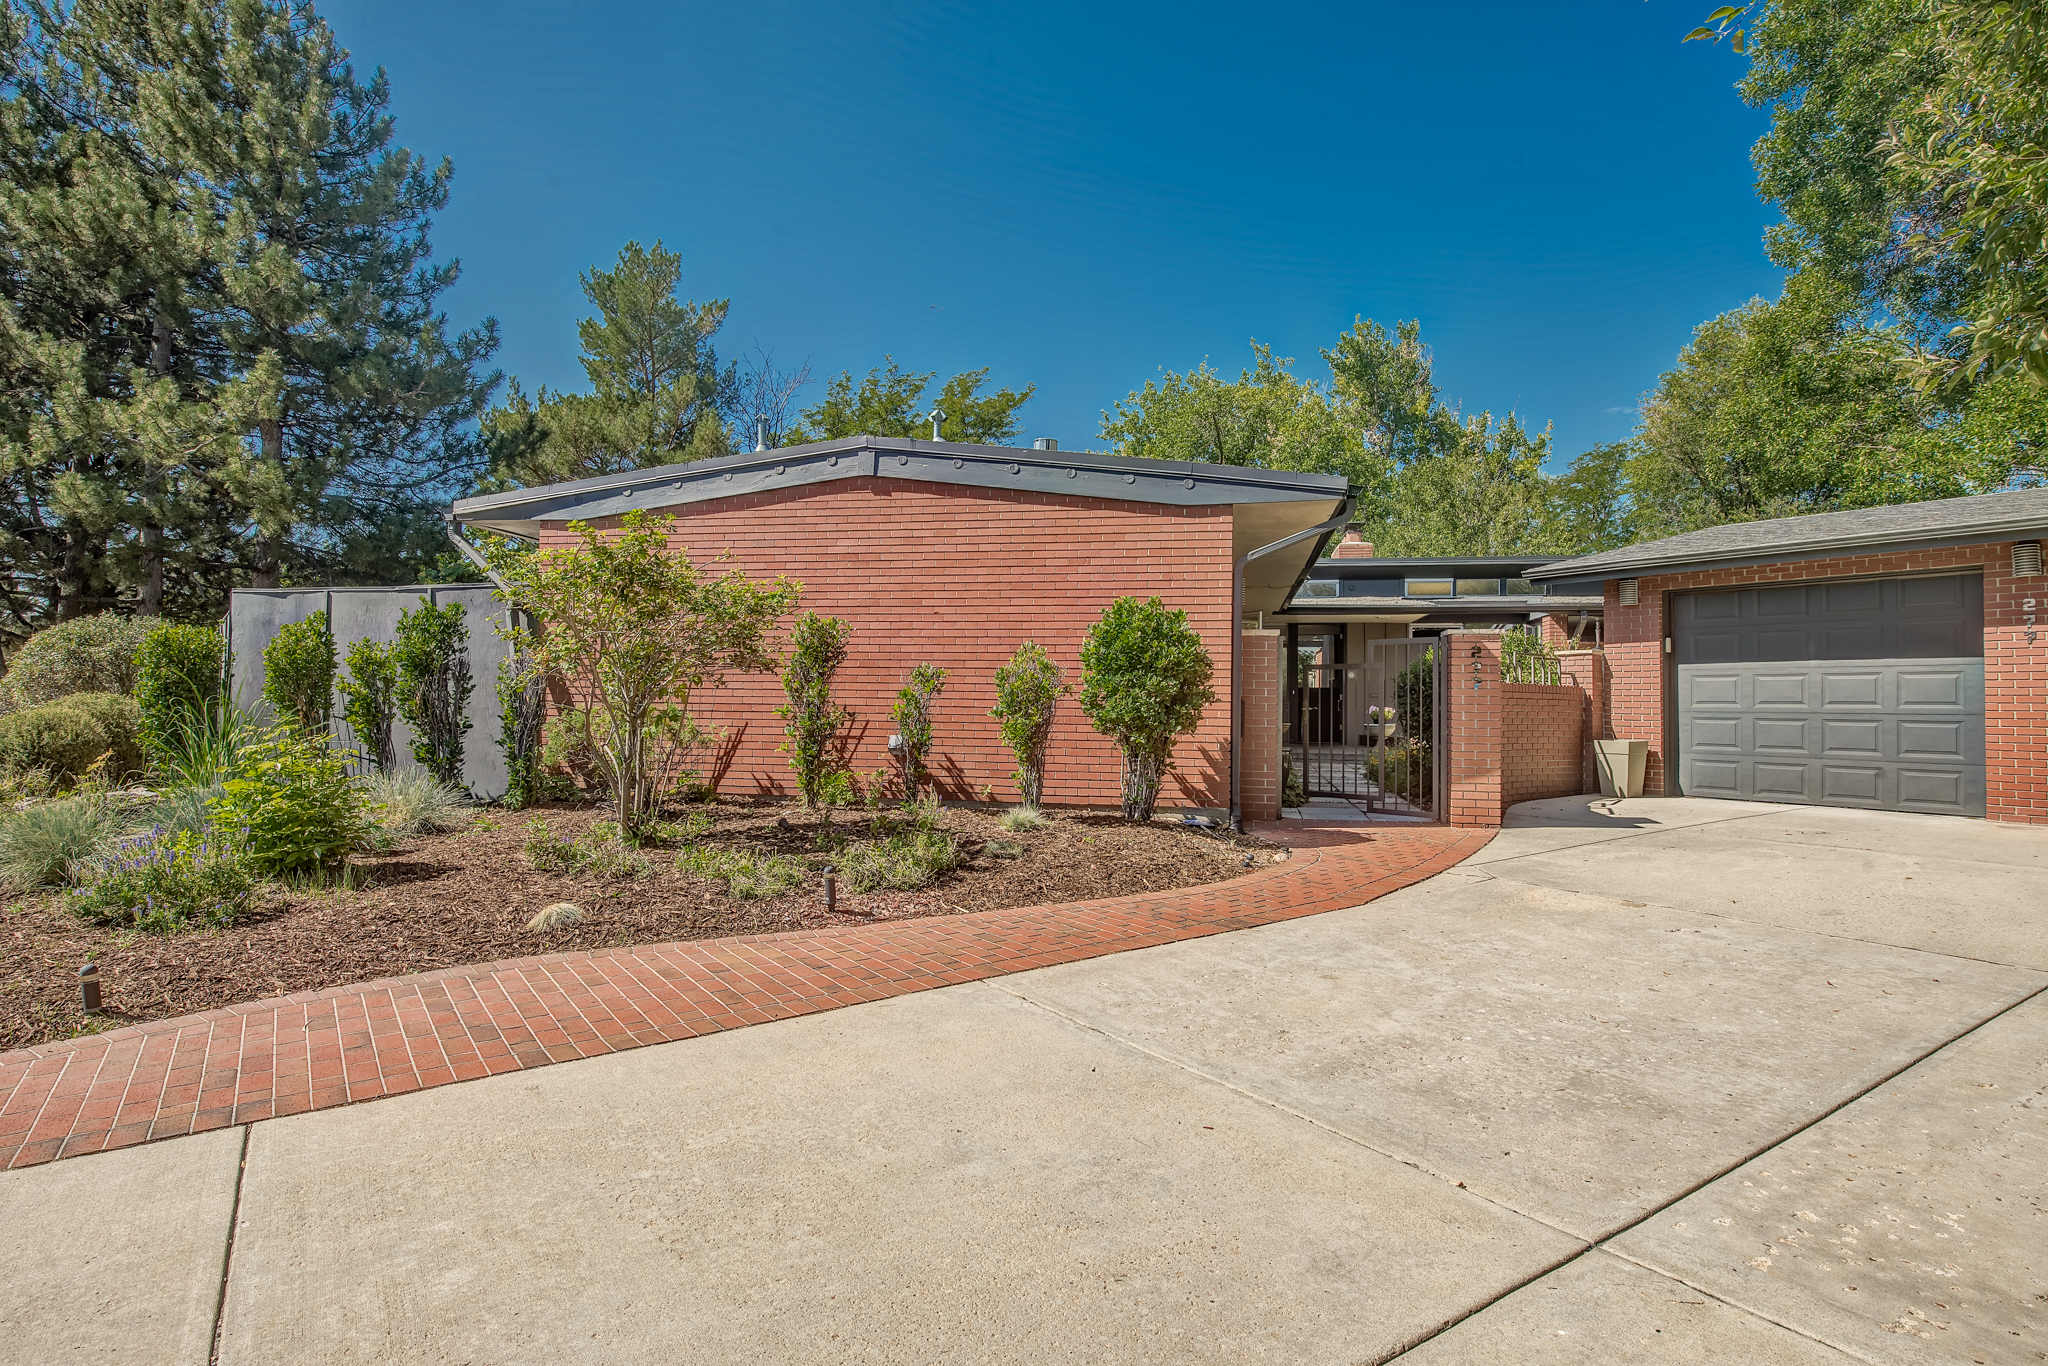 Single Family Home for Sale at Mid-Century Modern Ranch 277 South Dexter Street Hilltop, Denver, Colorado 80246 United States